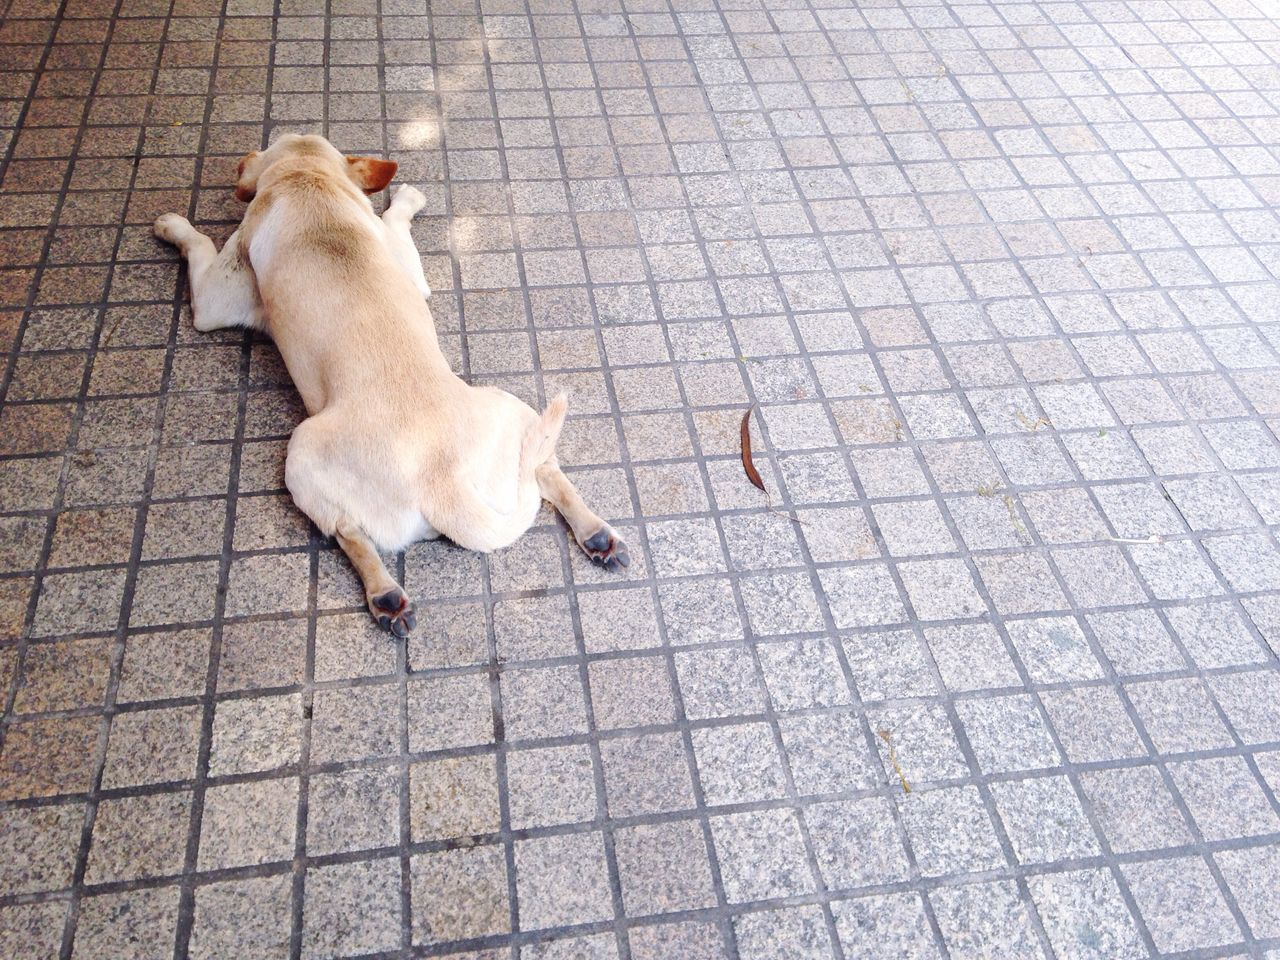 Happy Sleepy Relaxing Dog Cold Wind Cosy Lie Down On The Street White Dog Sleepy Relaxing Chill Out Easy Sleep True Tower Sleepy Joyful Dog Thai Street Dog Bangkok Ratchadapisek